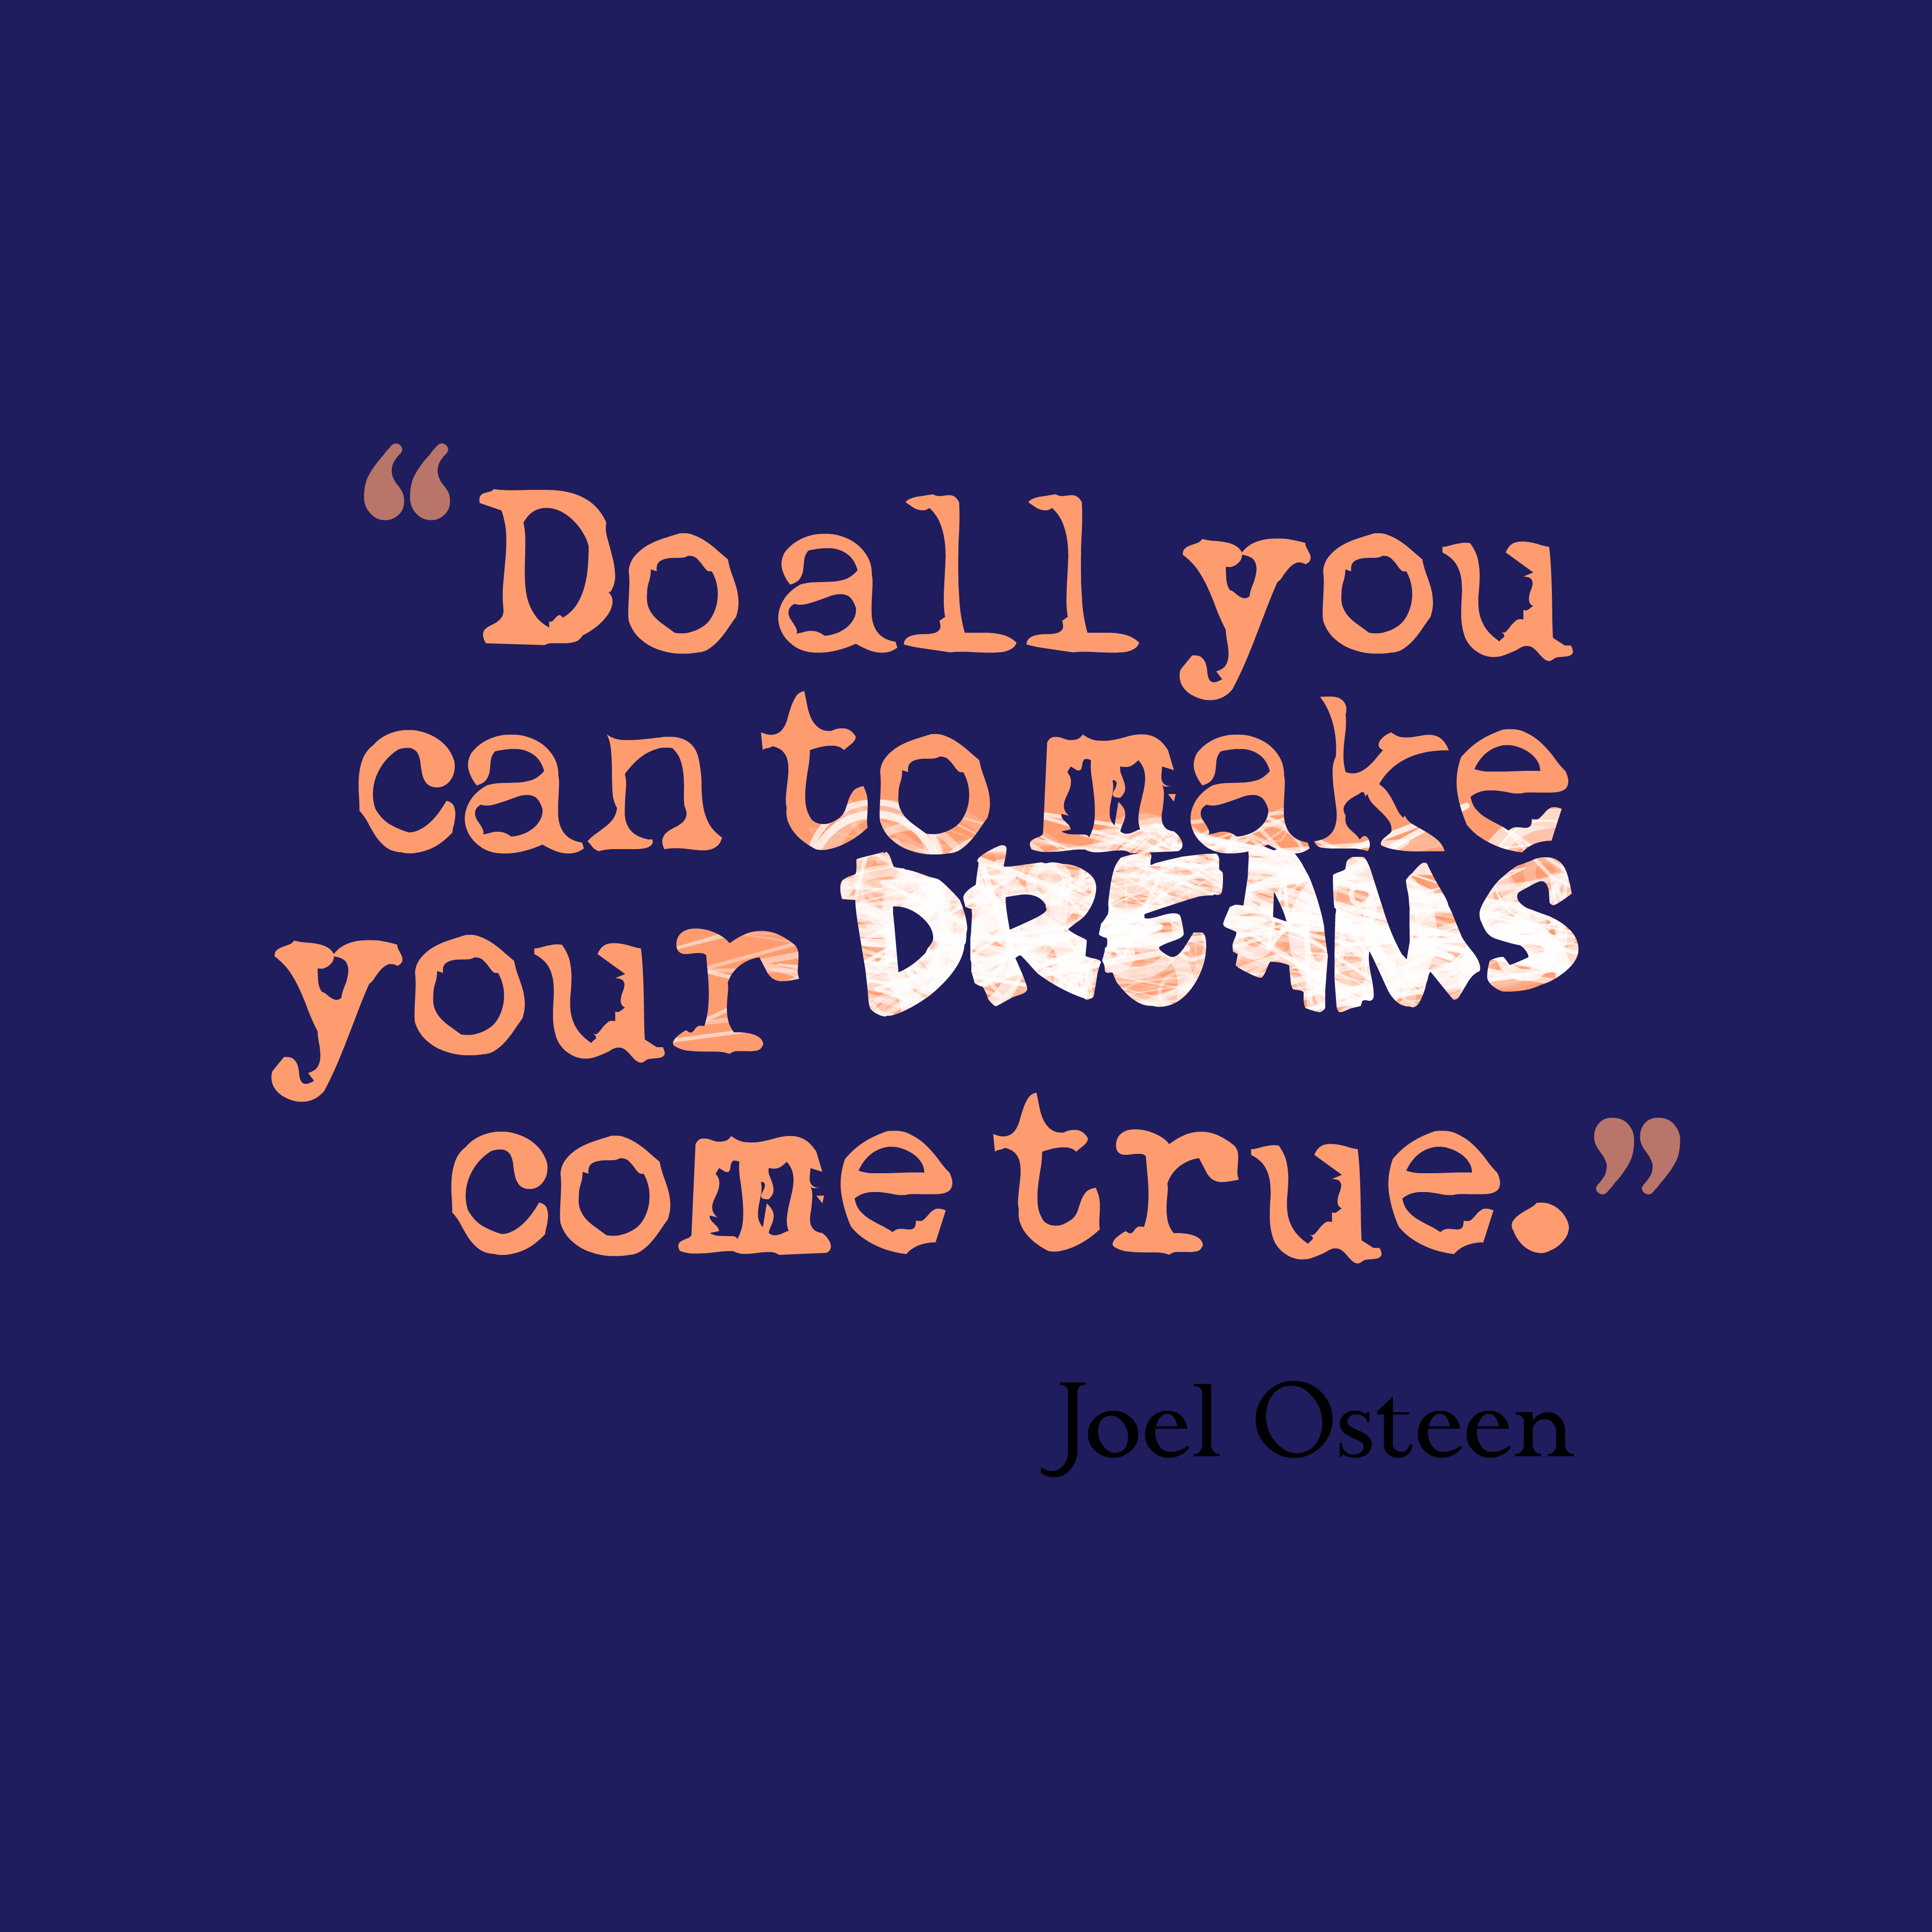 Joel Osteen Quote About Dream